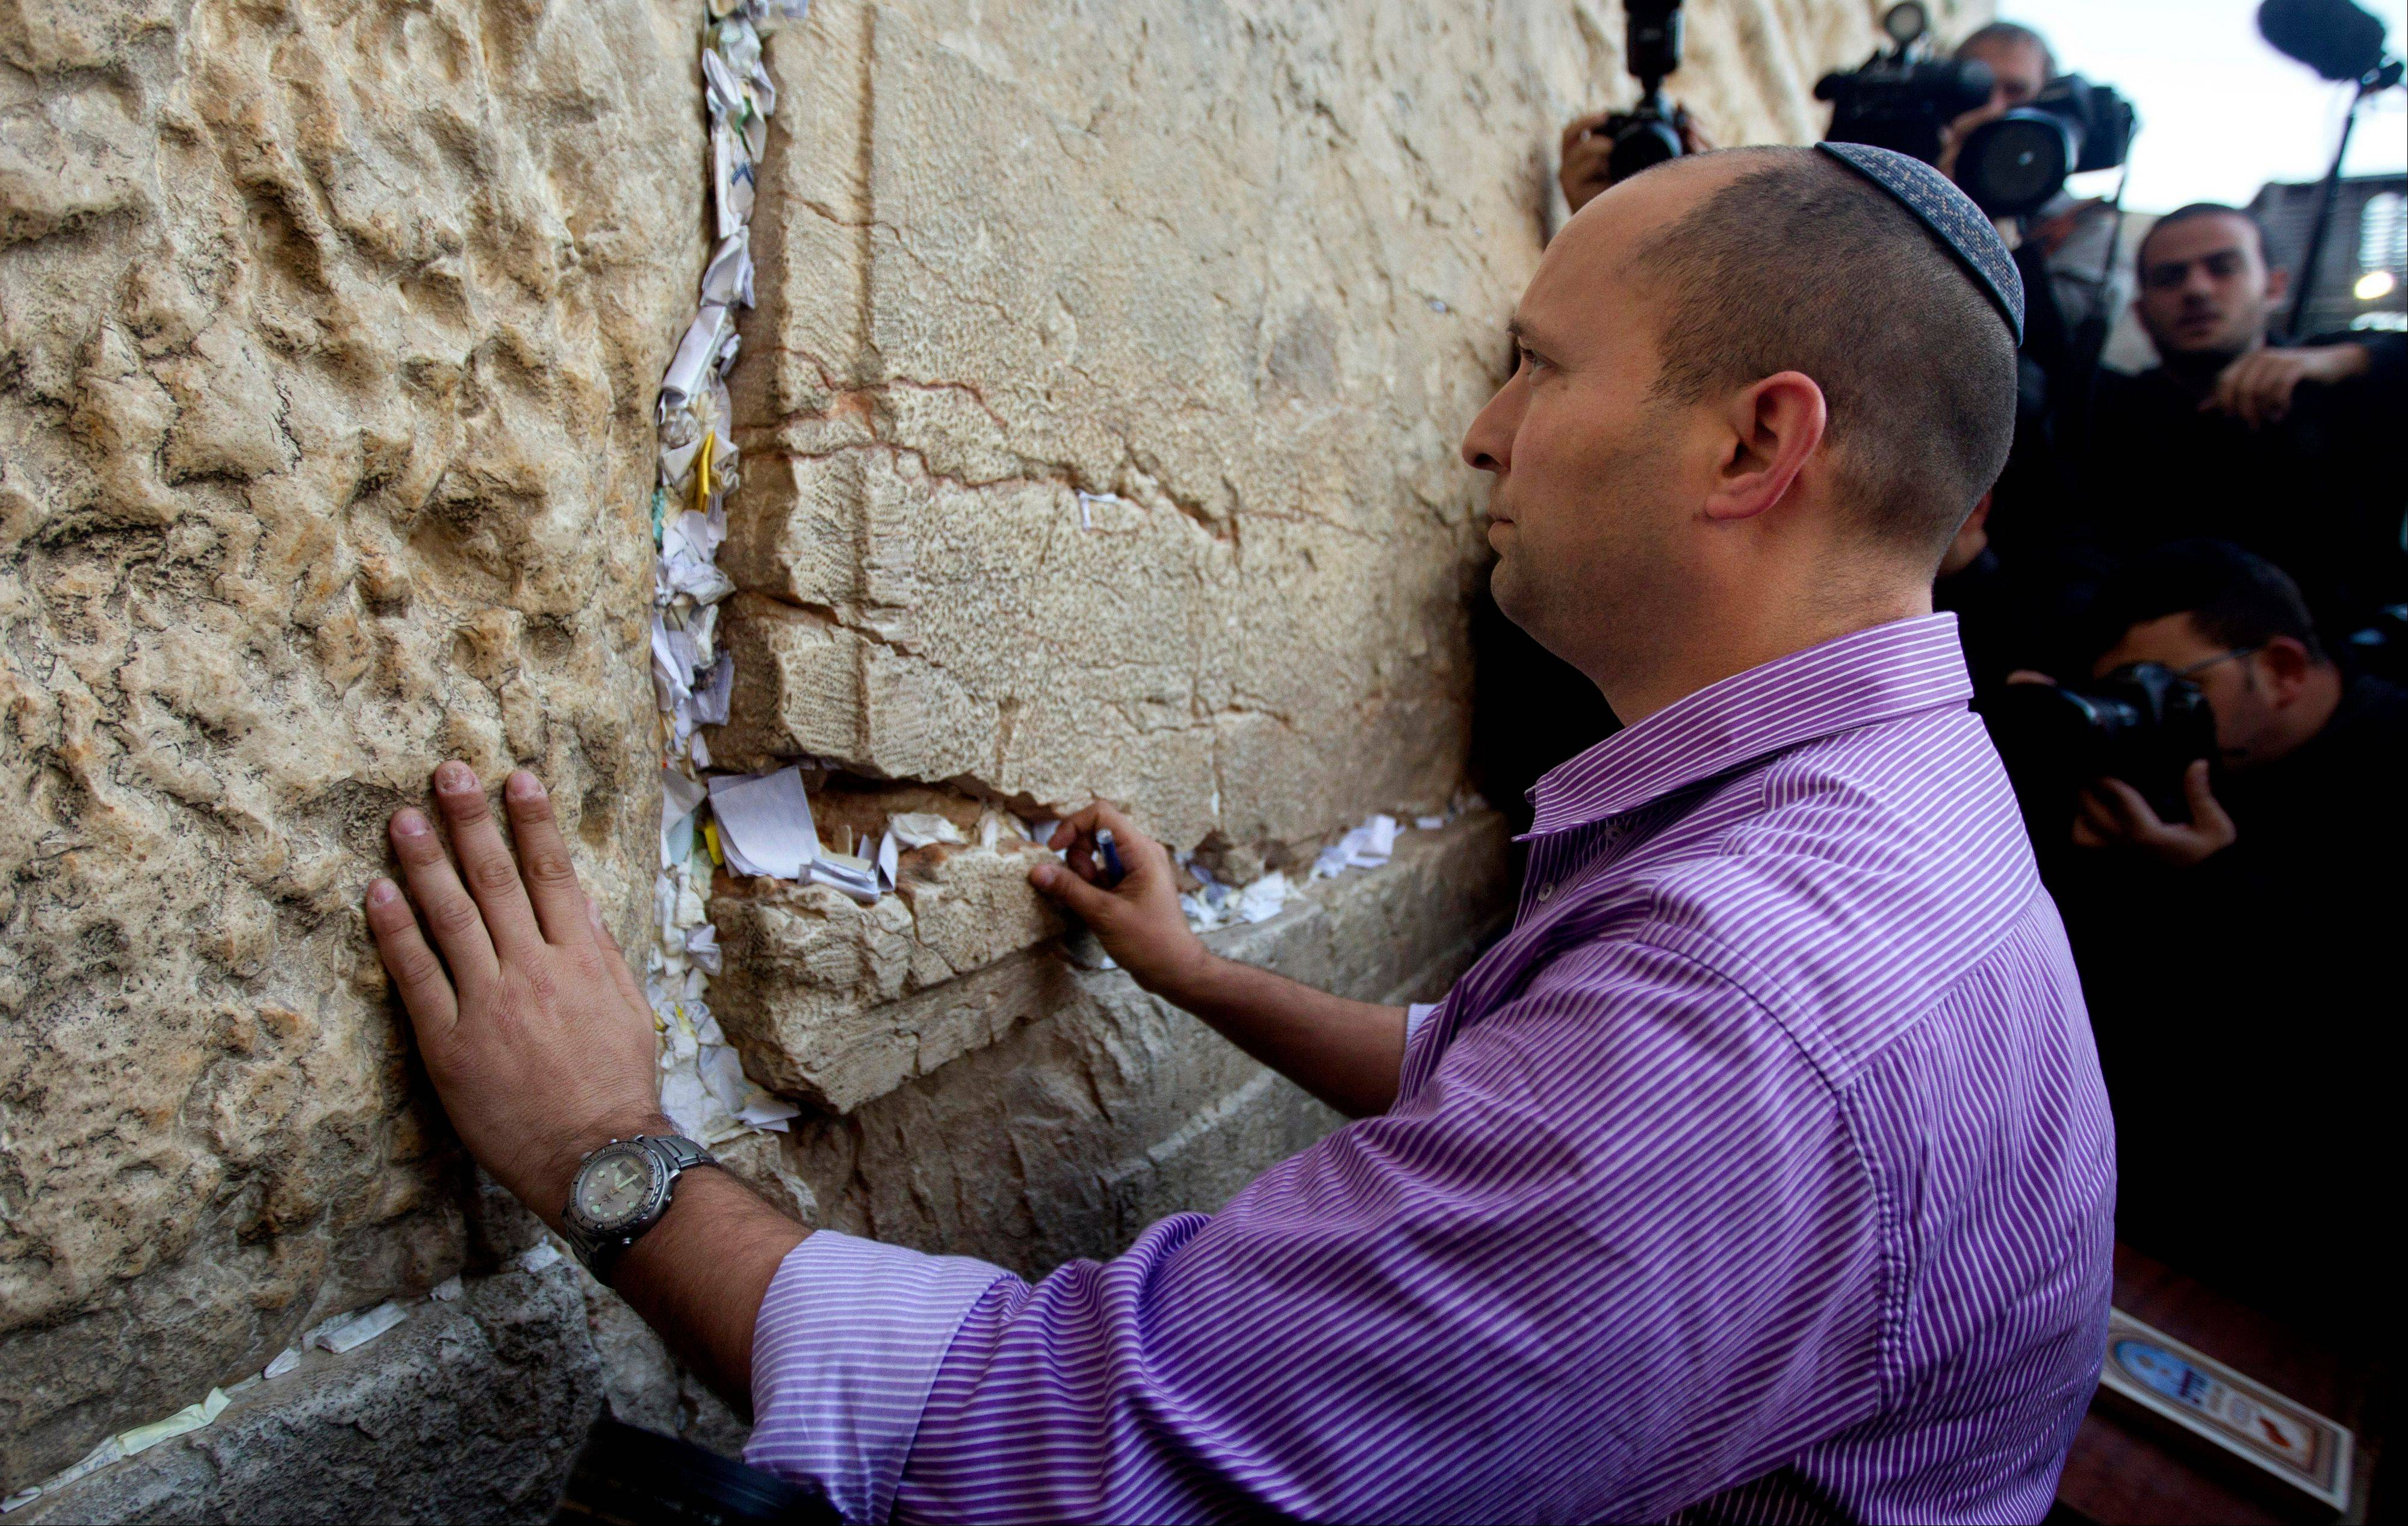 Naftali Bennett, head of the Jewish Home party, touches the stones of the Western Wall, the holiest site where Jews can pray, in Jerusalem�s Old City. The idea of Palestinians establishing a state in the territory they seek has �reached a dead end,� economics minister Naftali Bennett said Monday in the latest remarks by hard-liners that appear to contradict the country�s official support for a �two-state solution� to its conflict with the Palestinians.